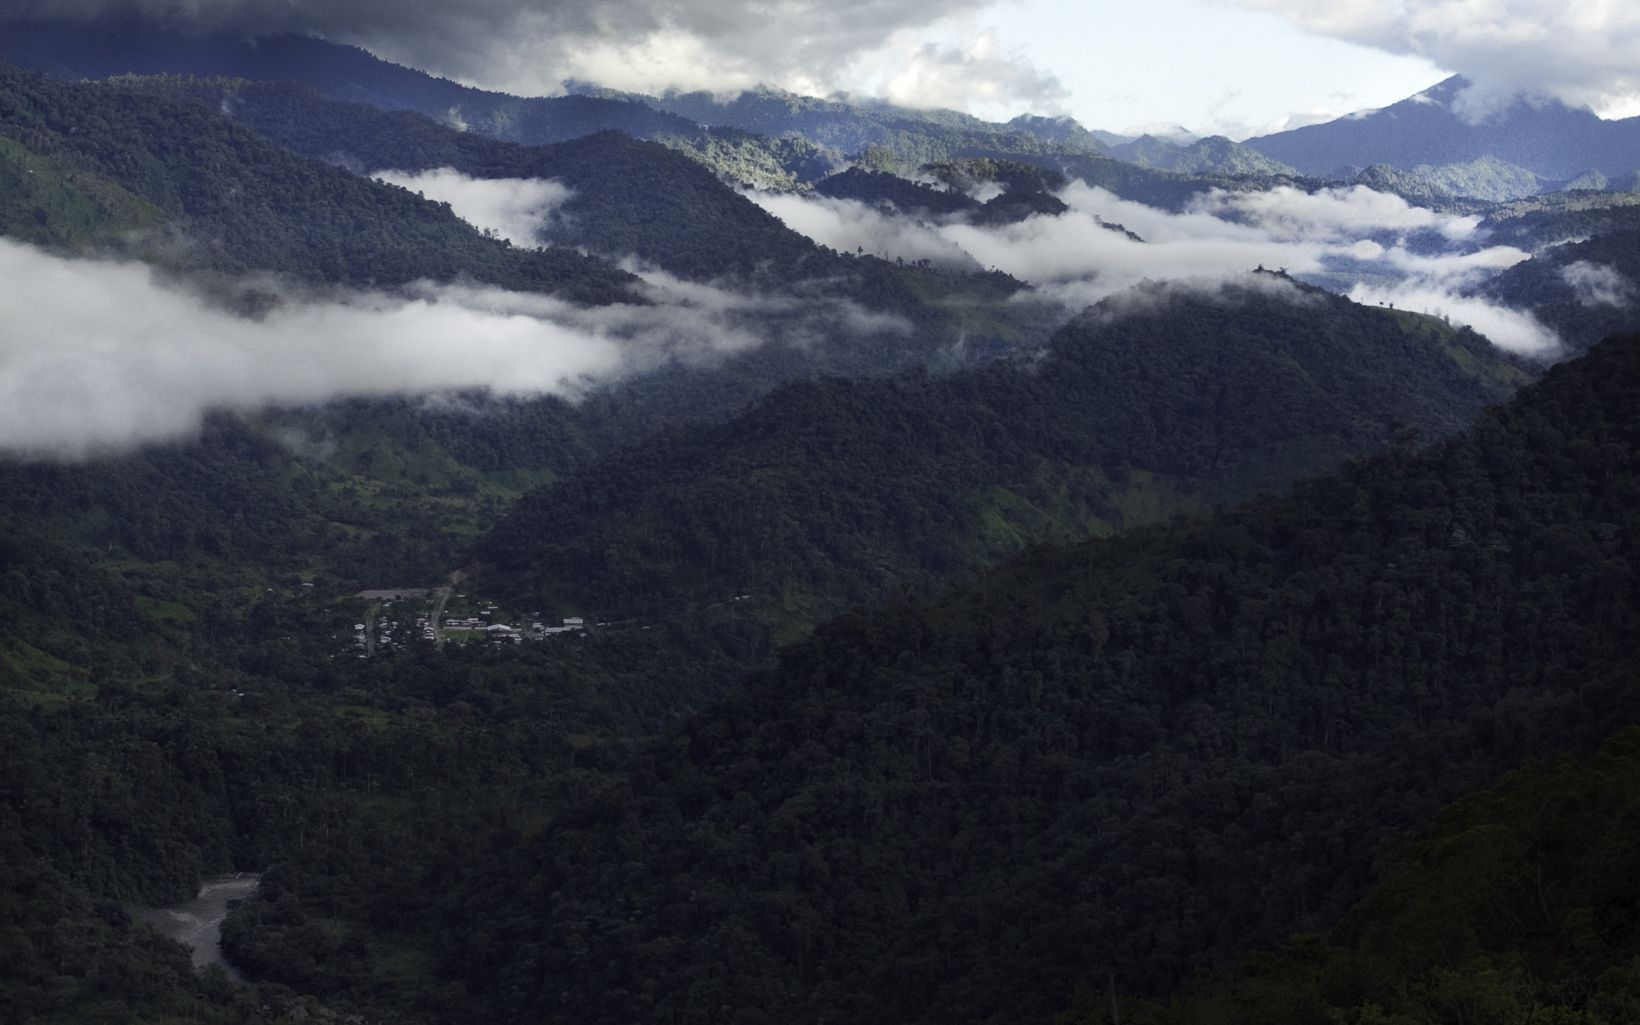 a view of the tropical Andes region